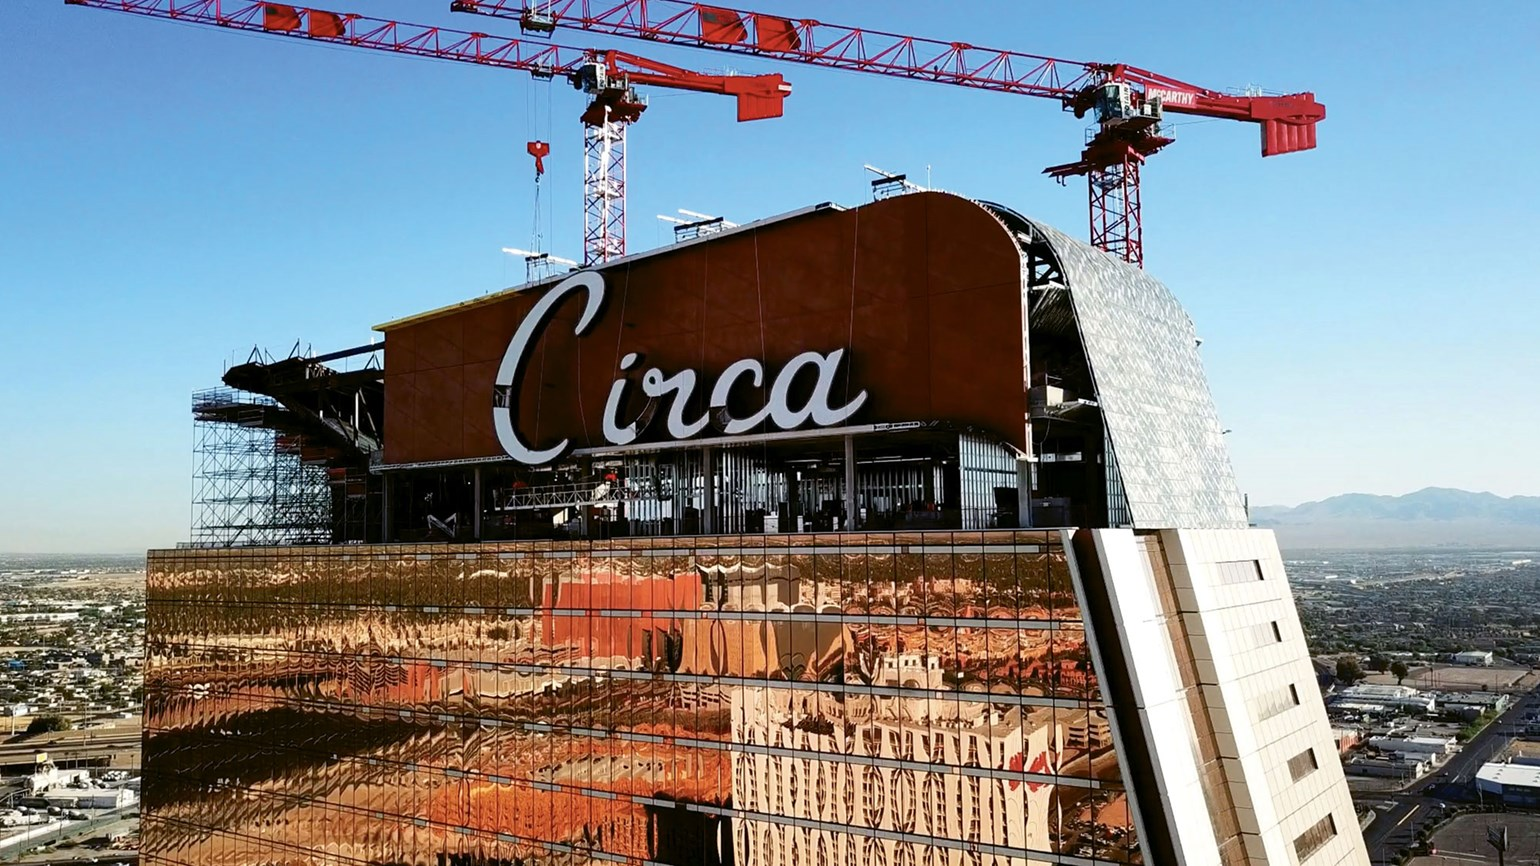 Circa's CEO excited about a fast-approaching debut